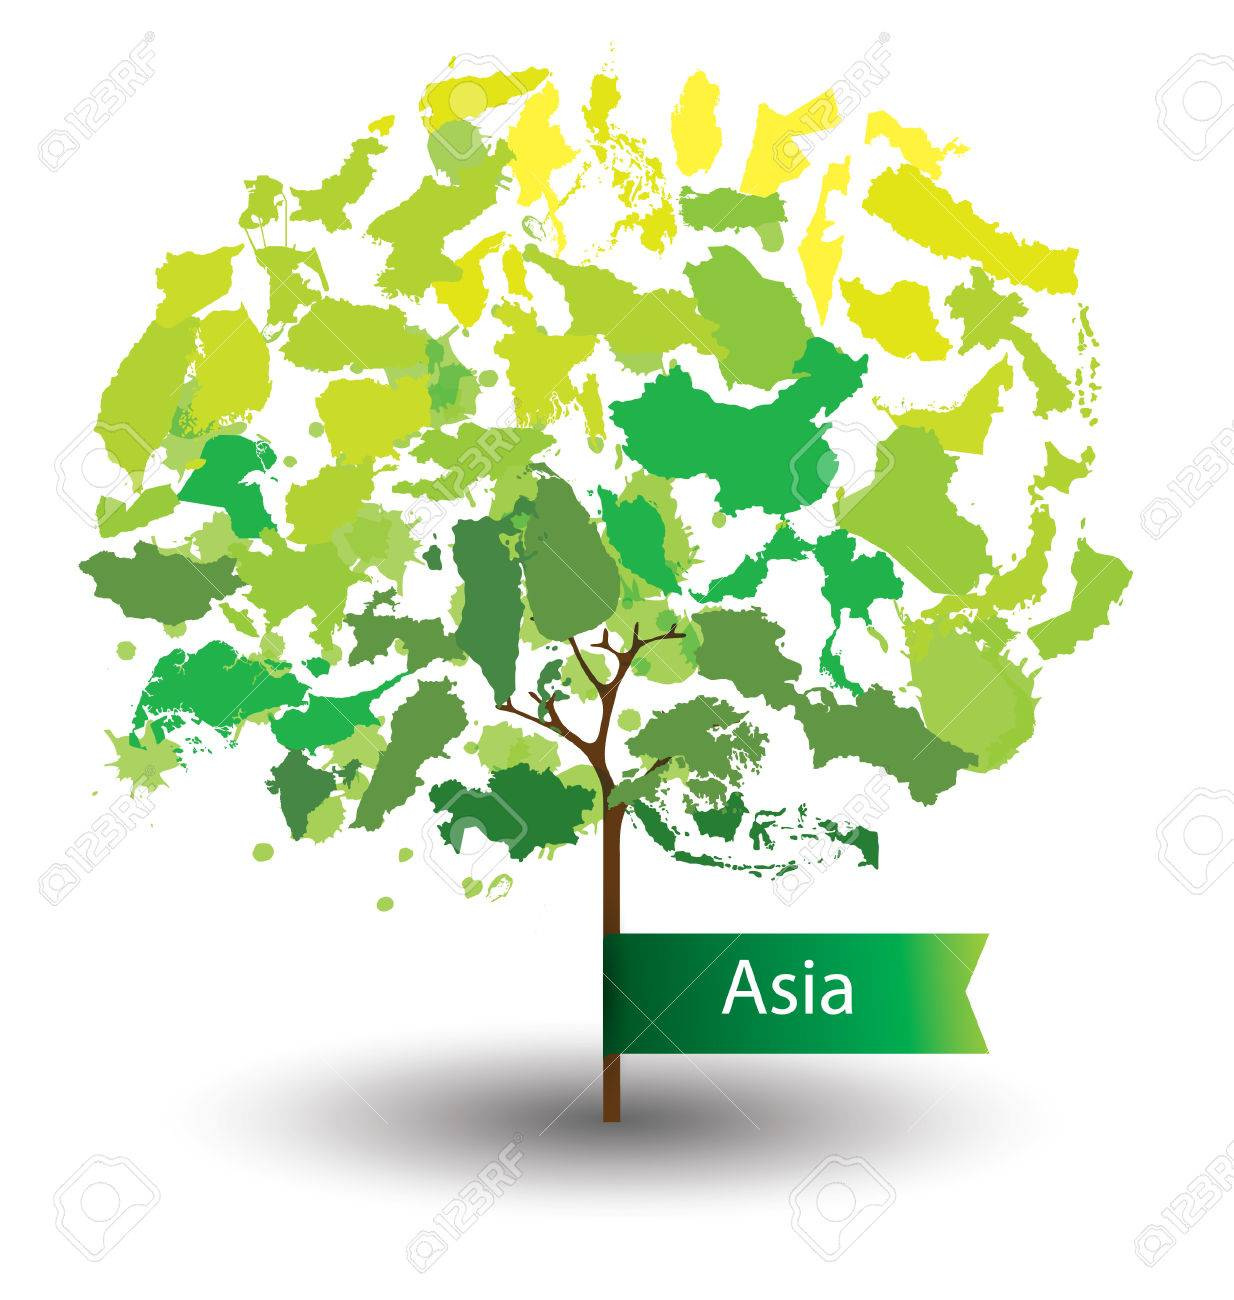 Tree design countries in asia world map vector illustration countries in asia world map vector illustration stock vector 39268097 gumiabroncs Images